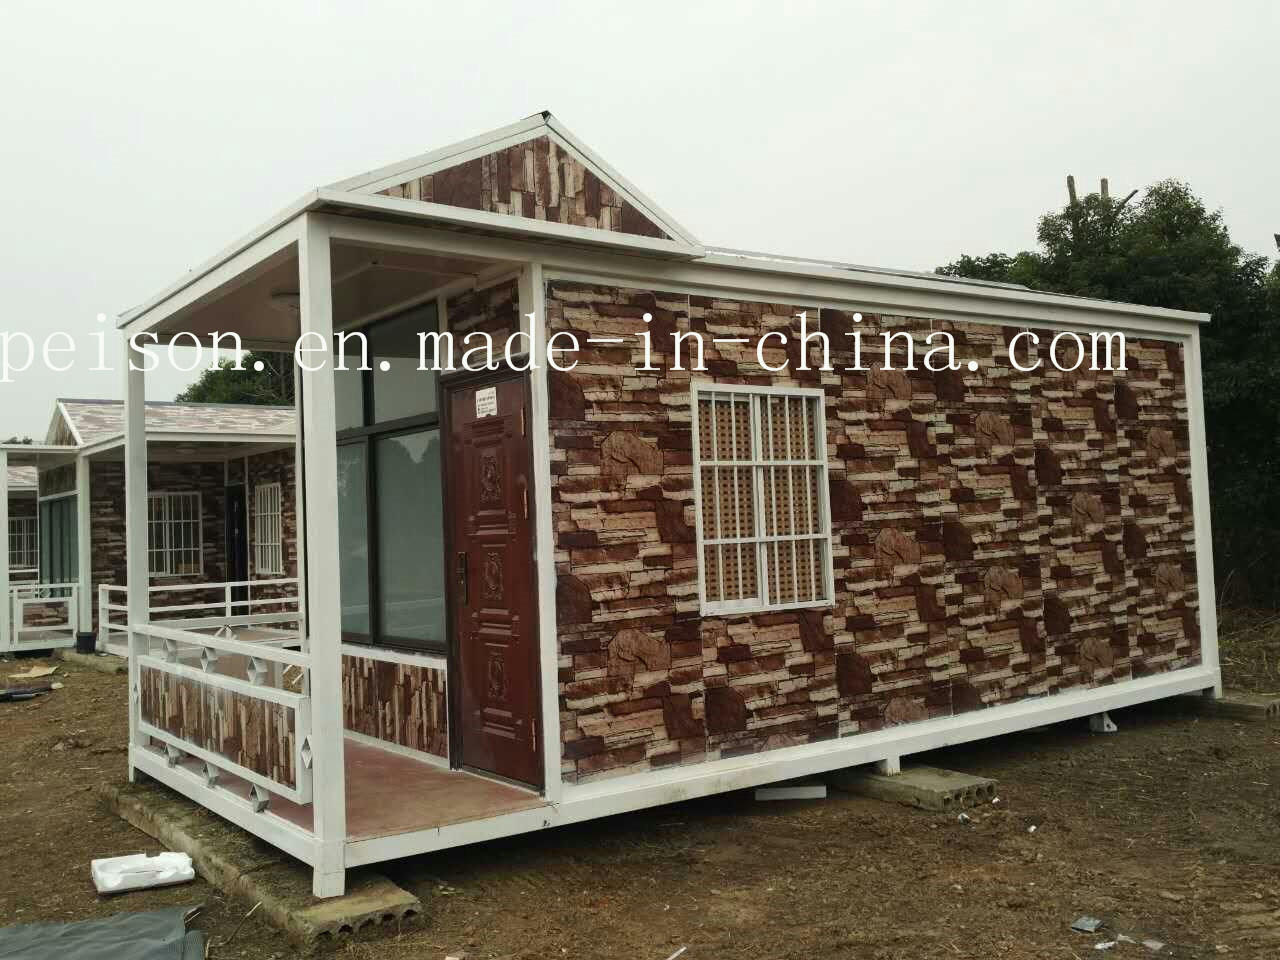 Folding Mobile Prefabricated/Prefab House for Tourist Attraction